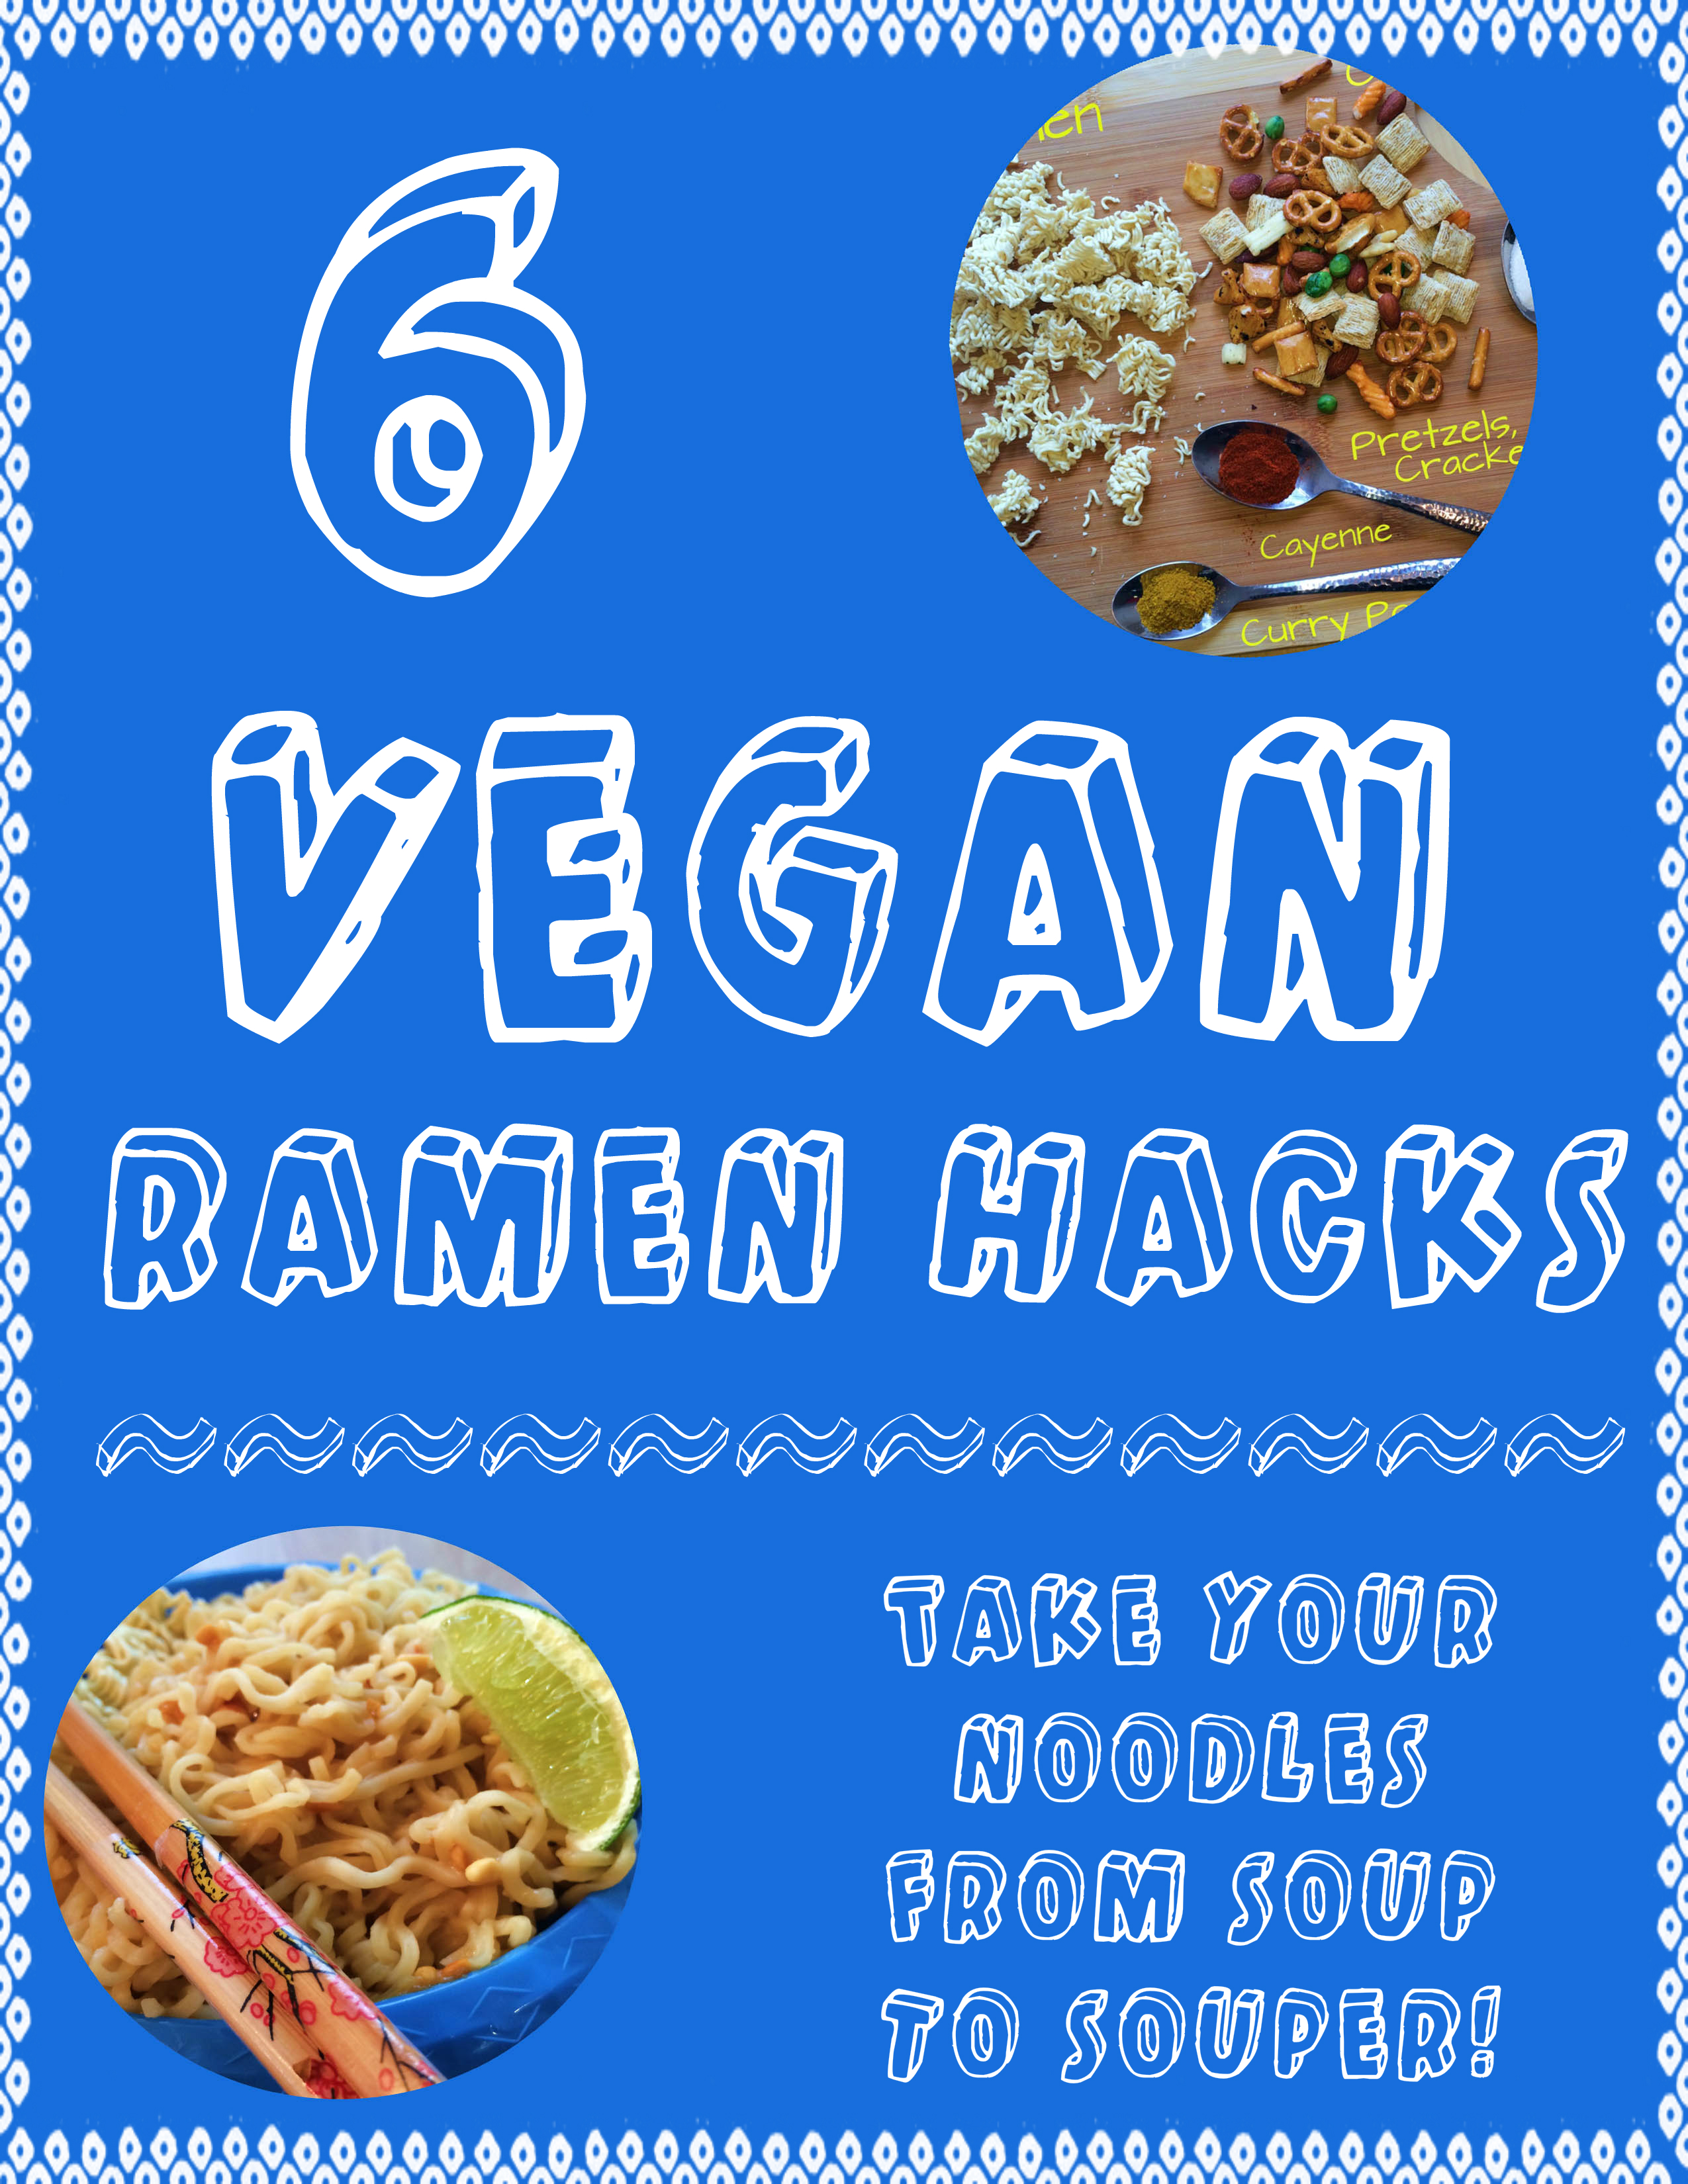 vegan ramen recipe hacks peta2